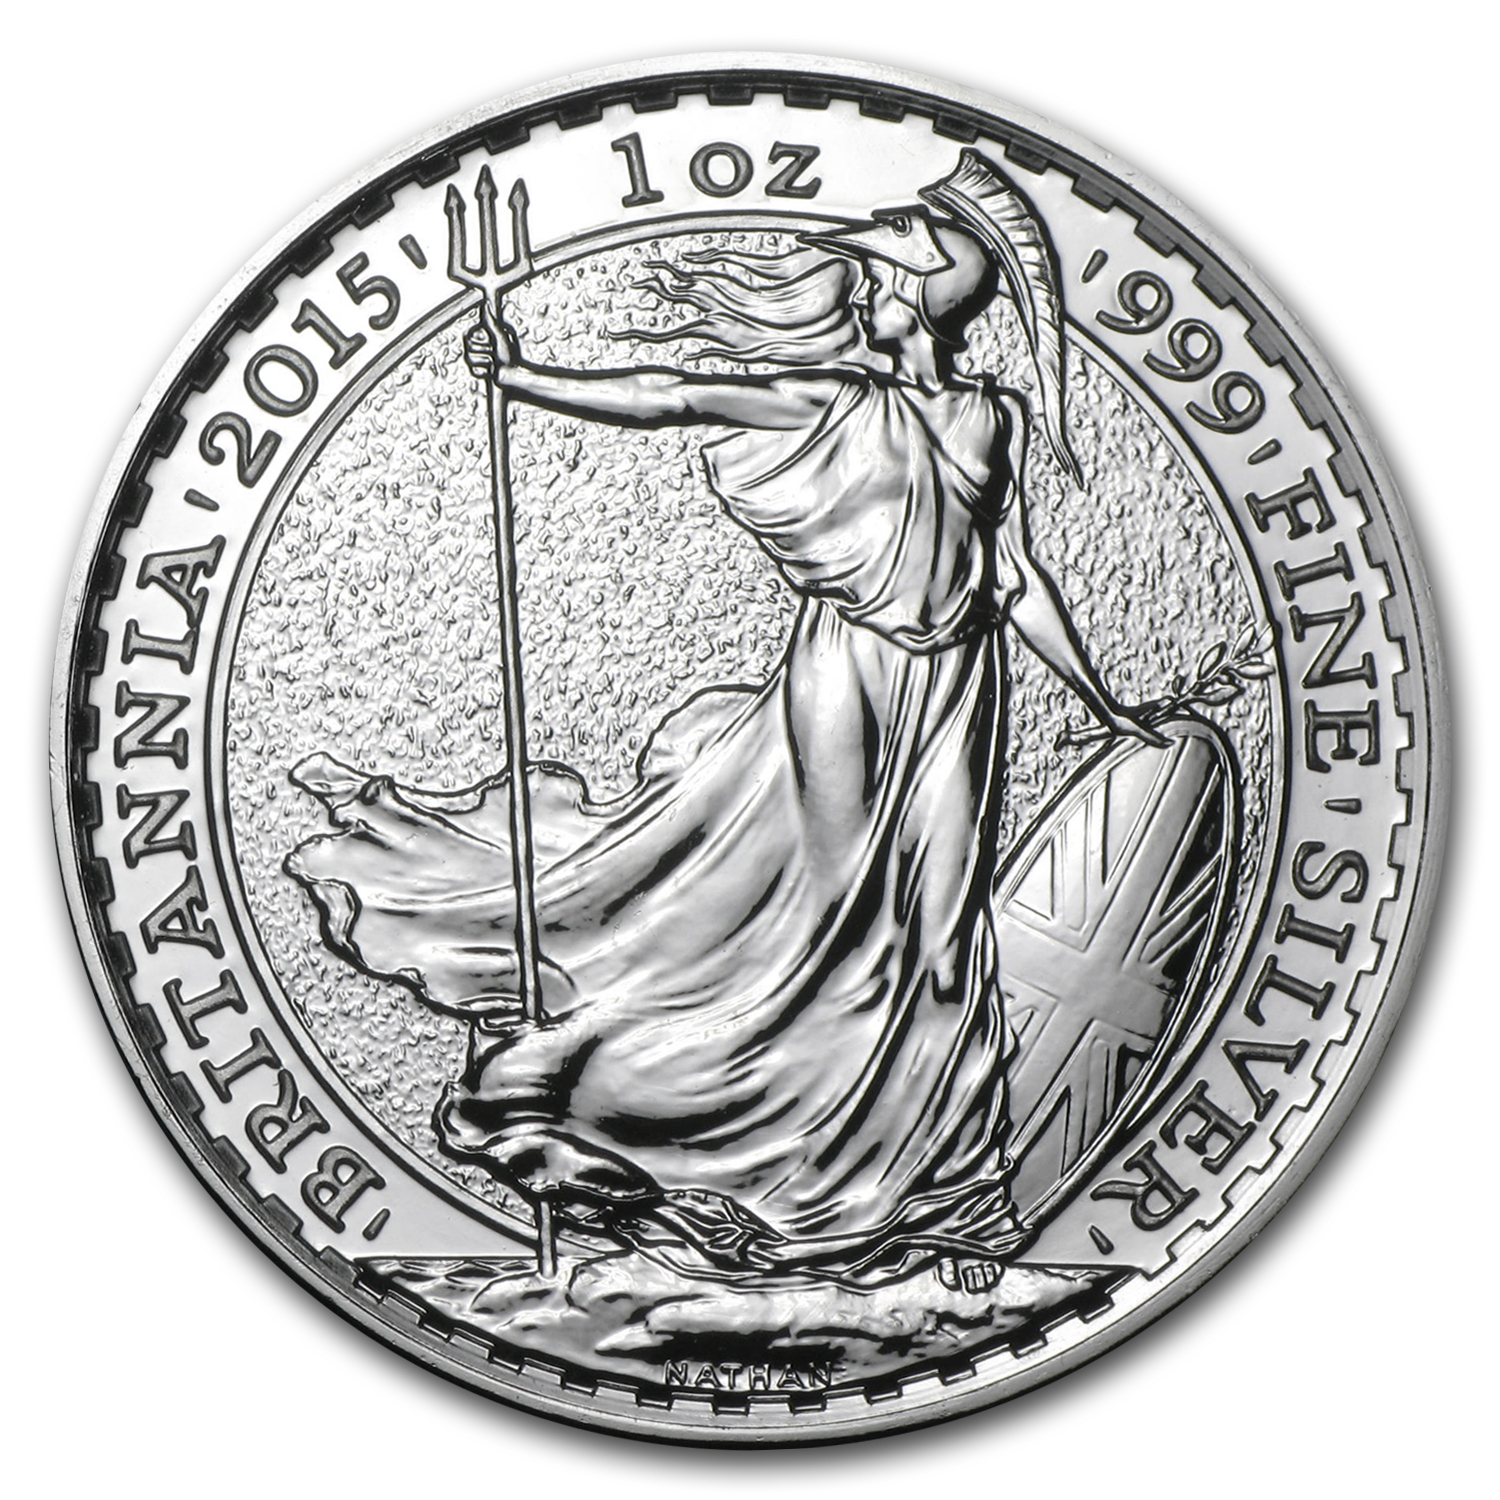 2015 Great Britain 1 oz Silver Britannia BU (1/29)